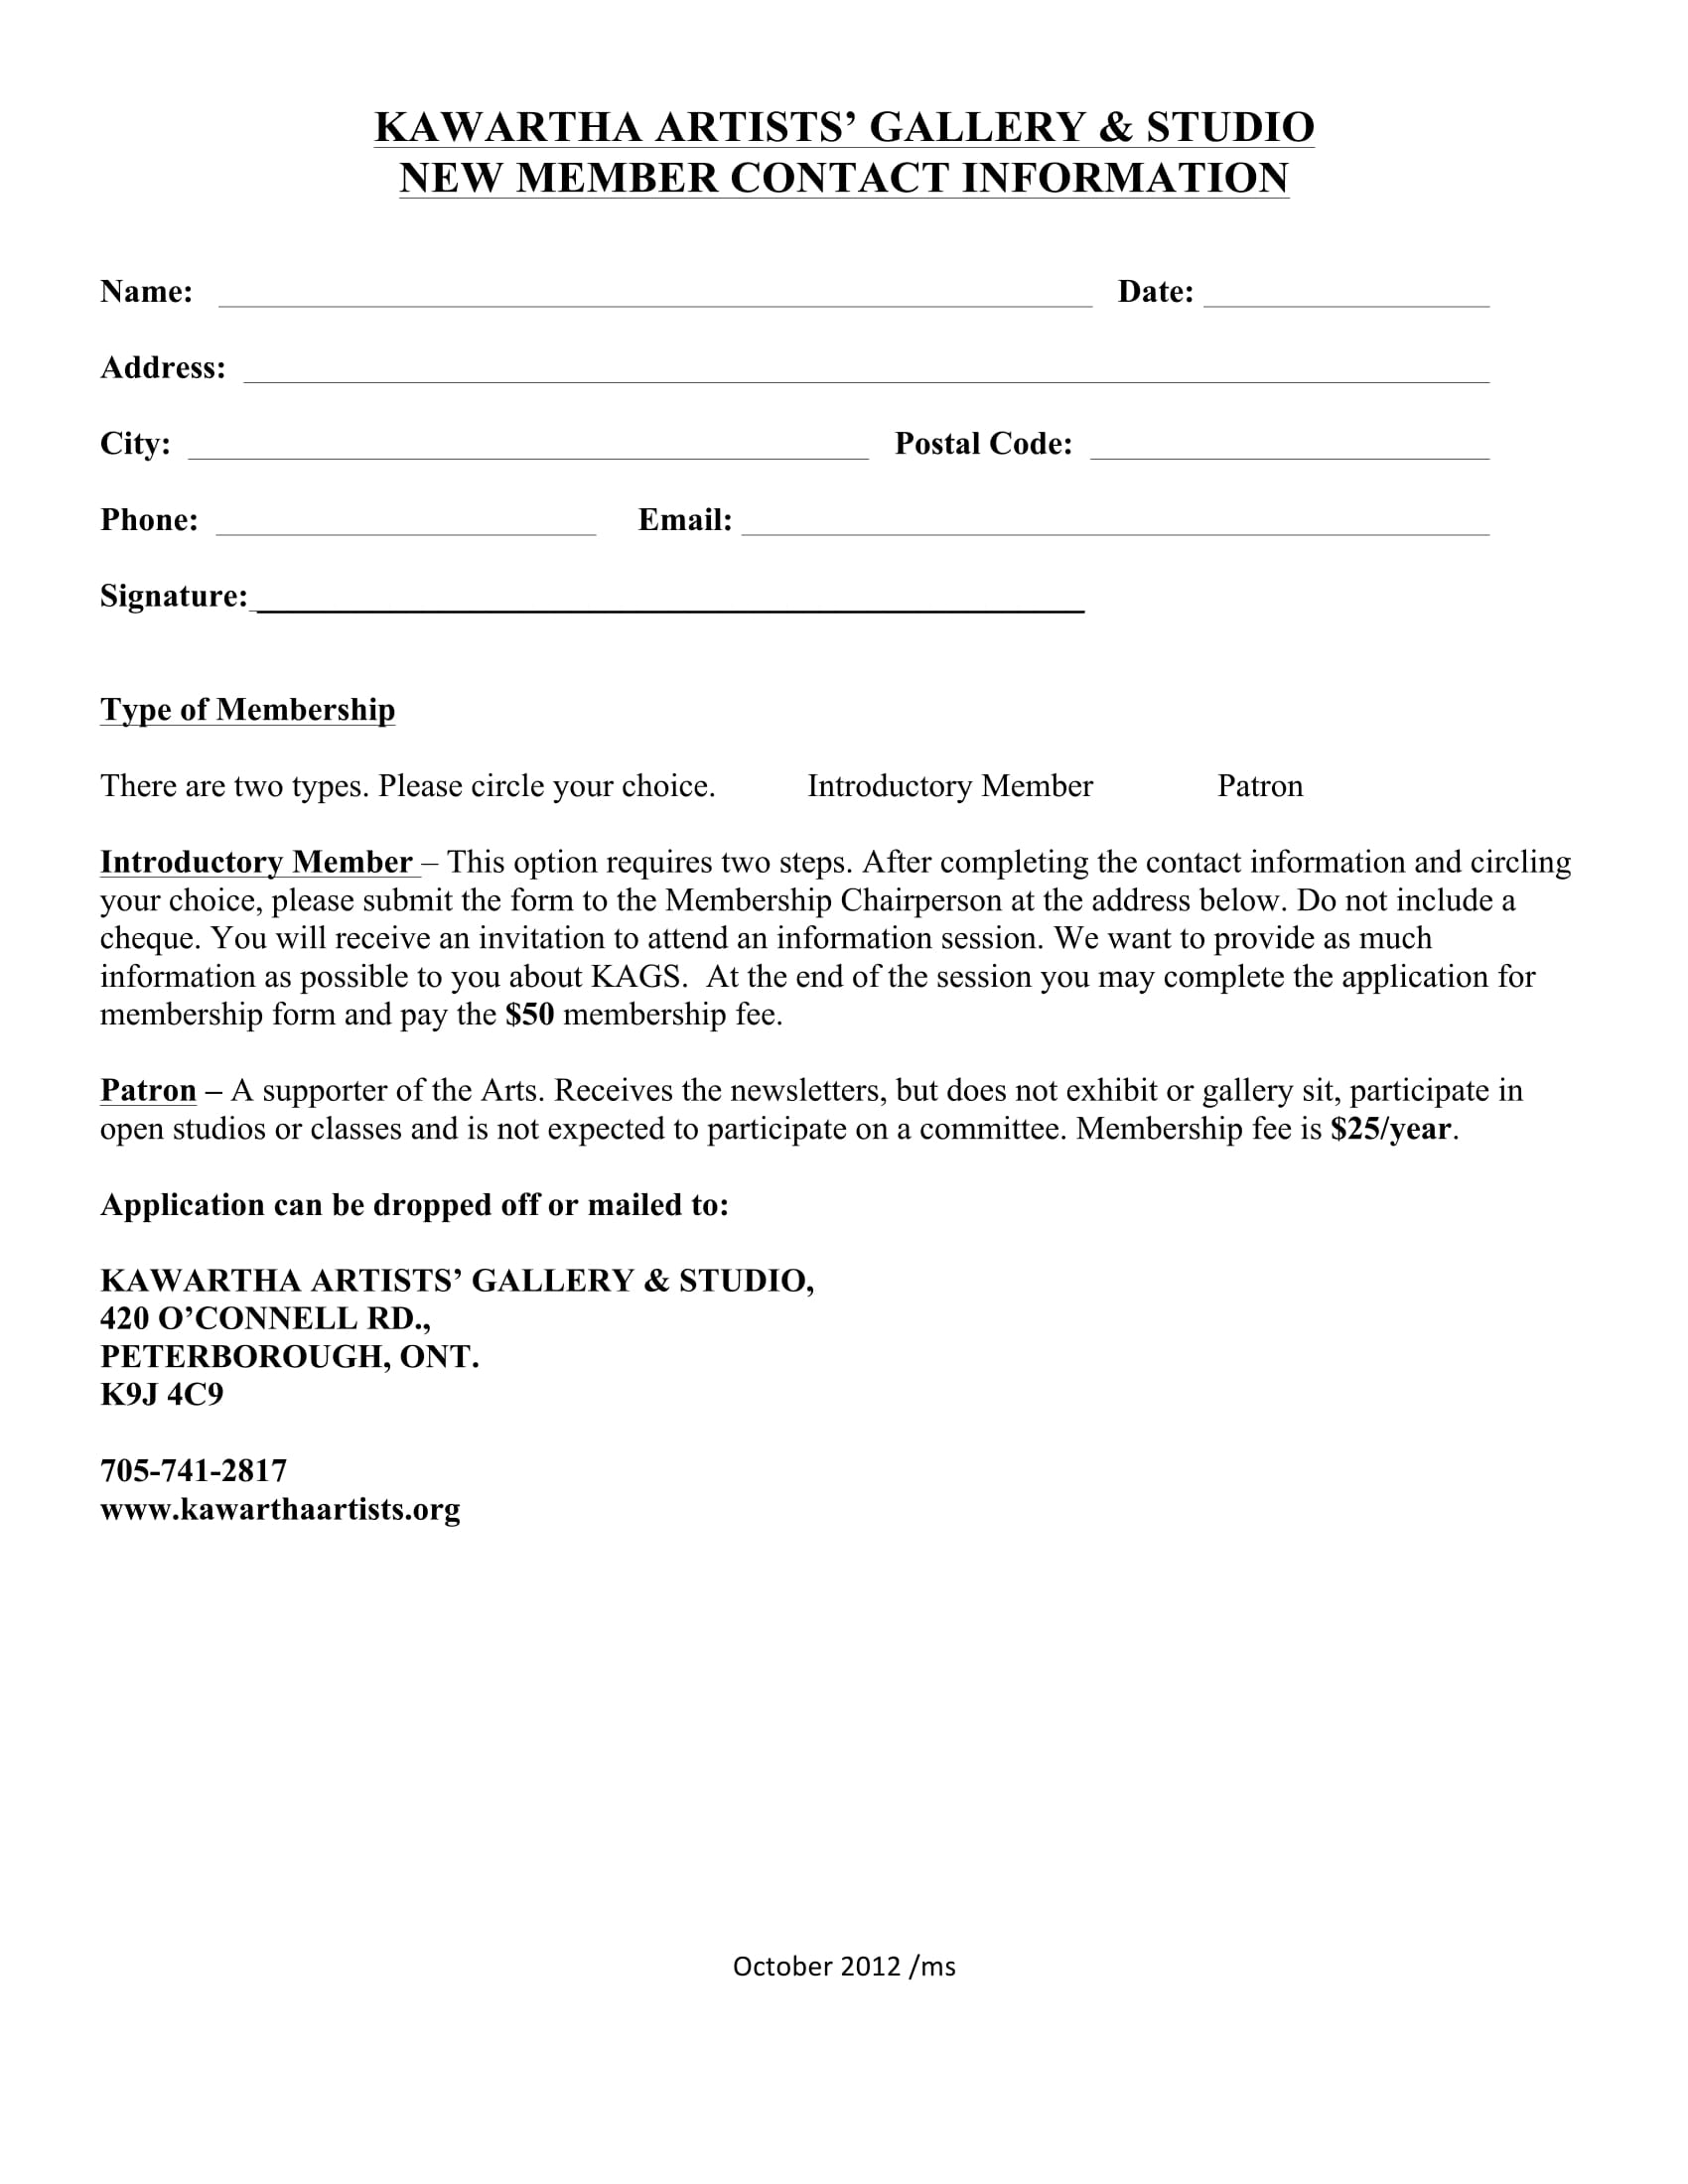 new member contact information form 1